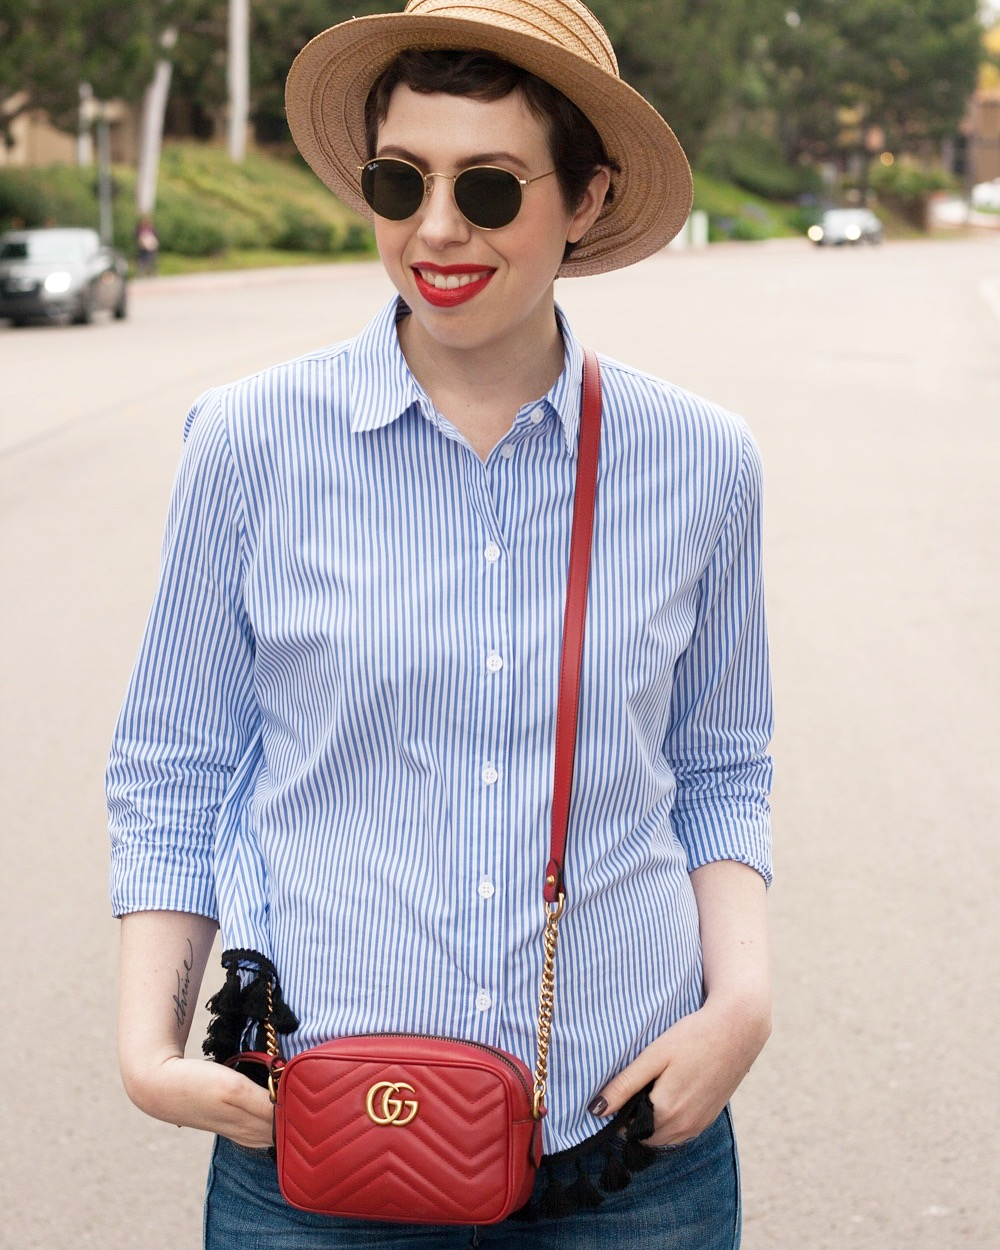 Striped Who What Wear short, Hinge boater hat, red Gucci Marmont Matelasse bag